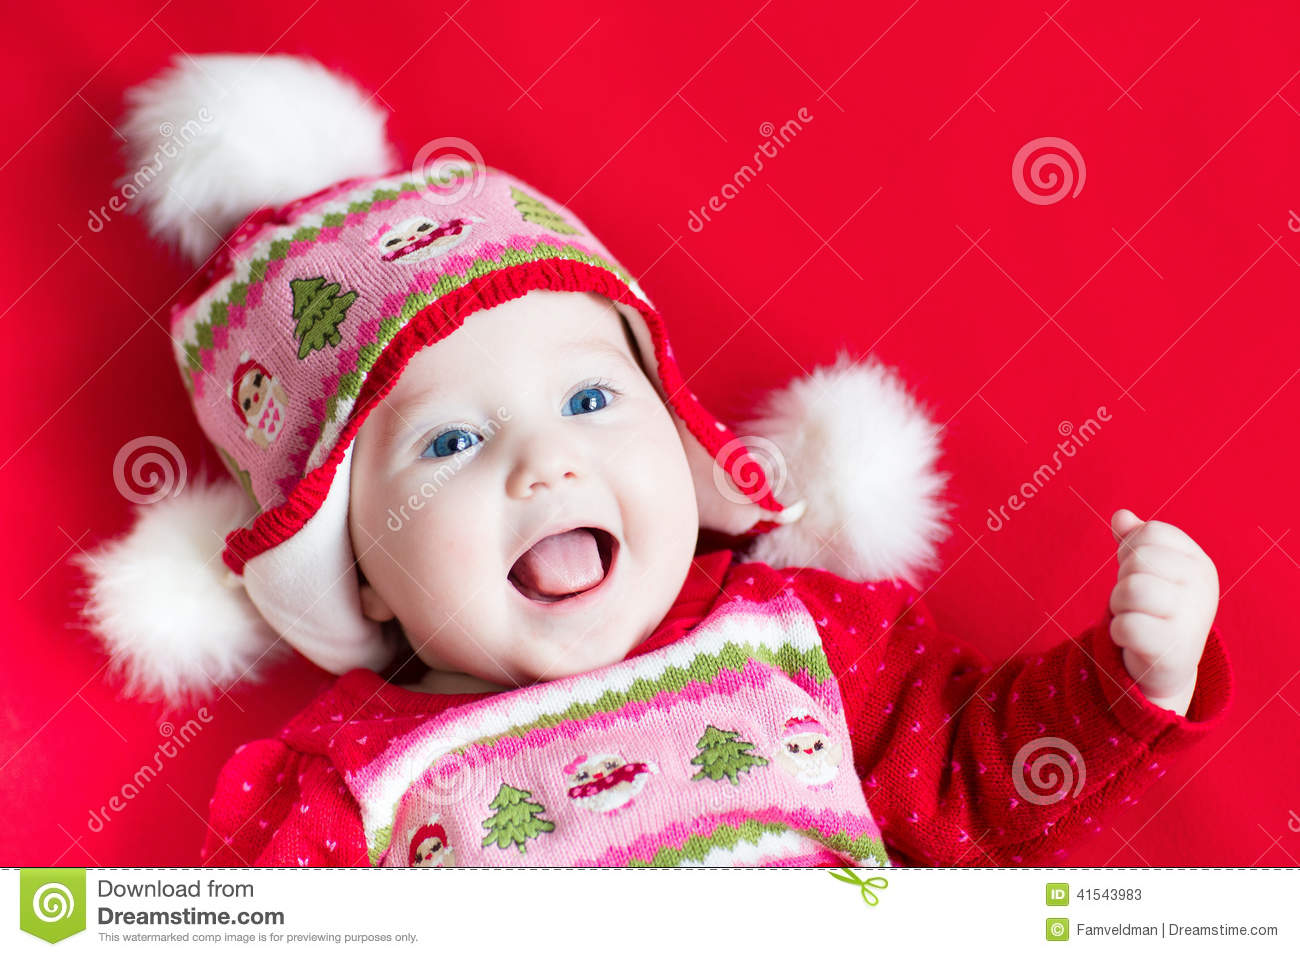 Christmas dress for baby - Baby Christmas Cute Decorated Dress